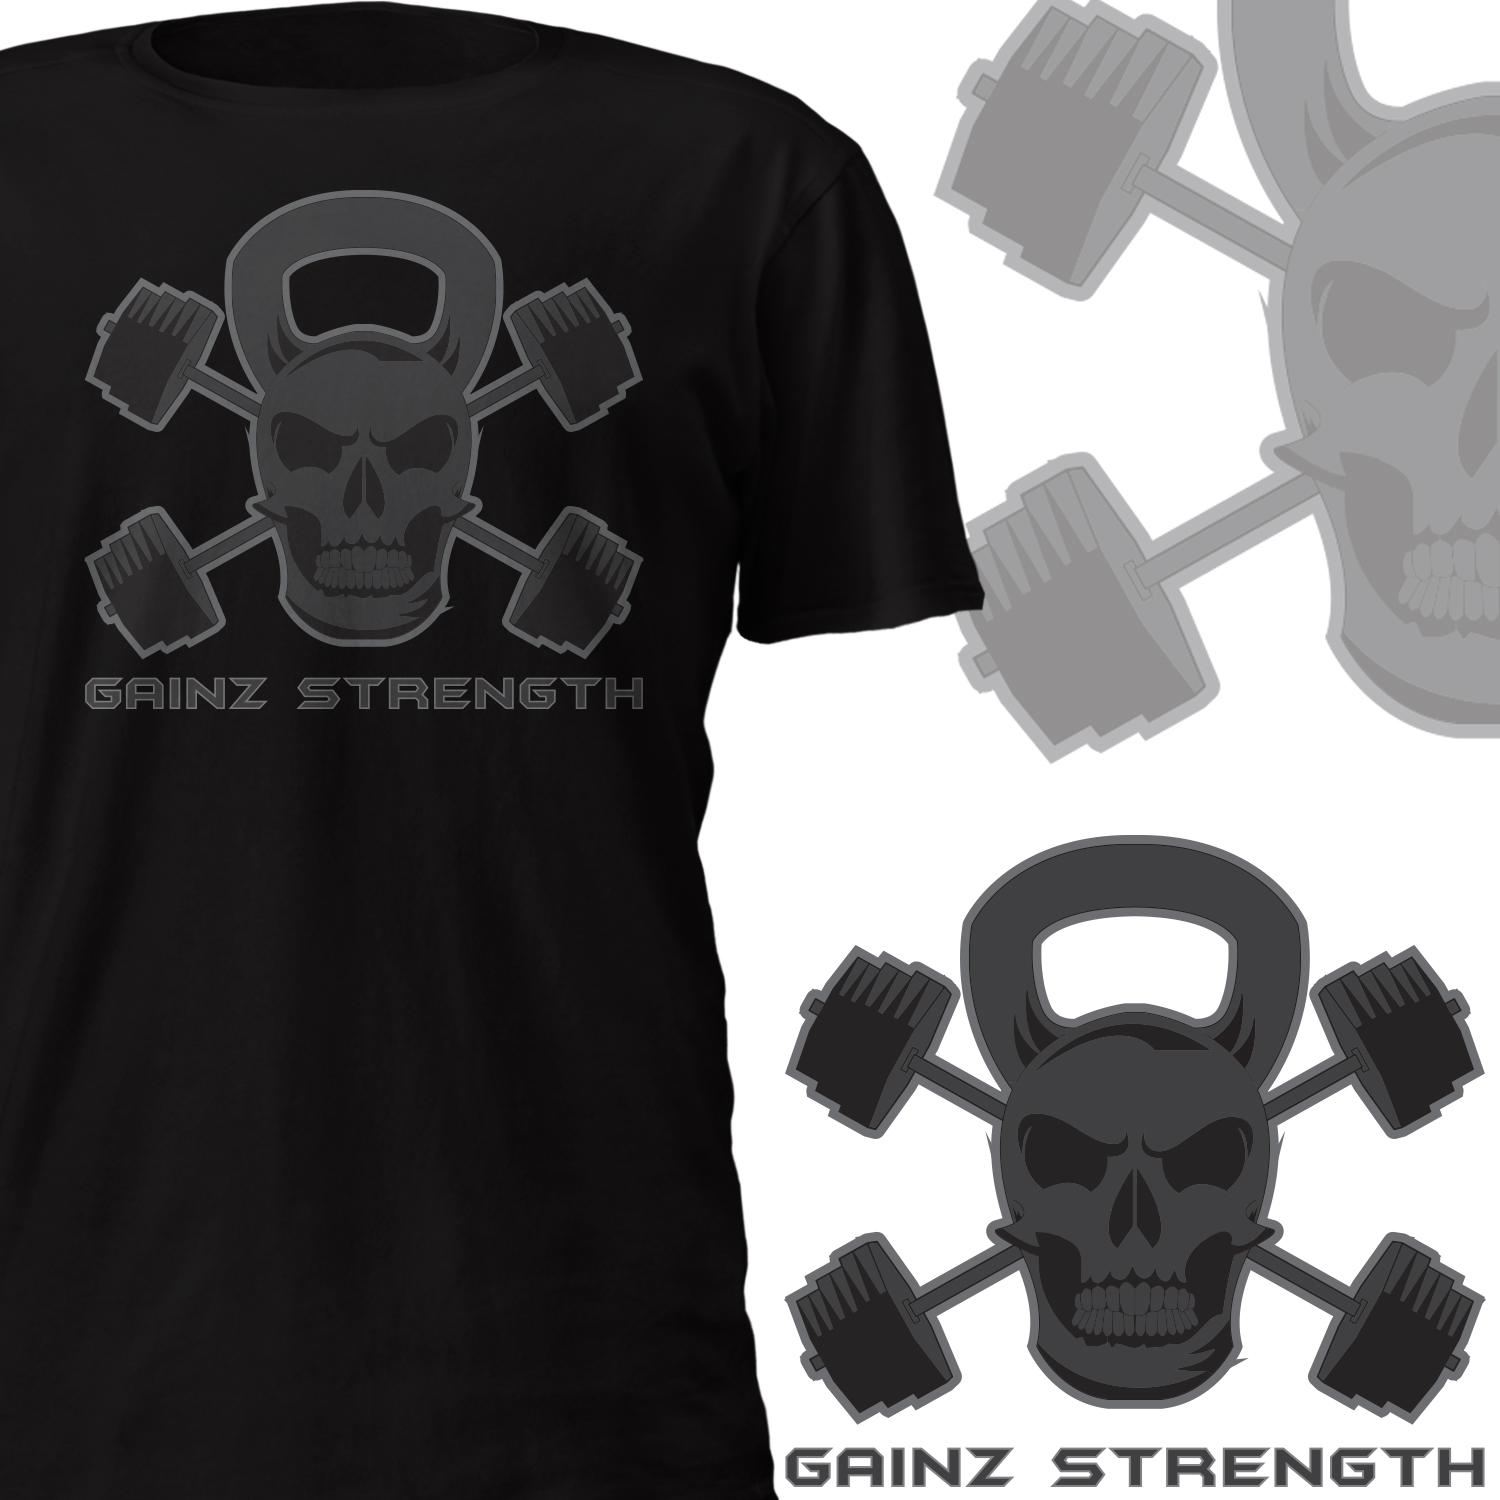 Shirt design equipment - Bold Serious T Shirt Design For Company In United States Design 12323597